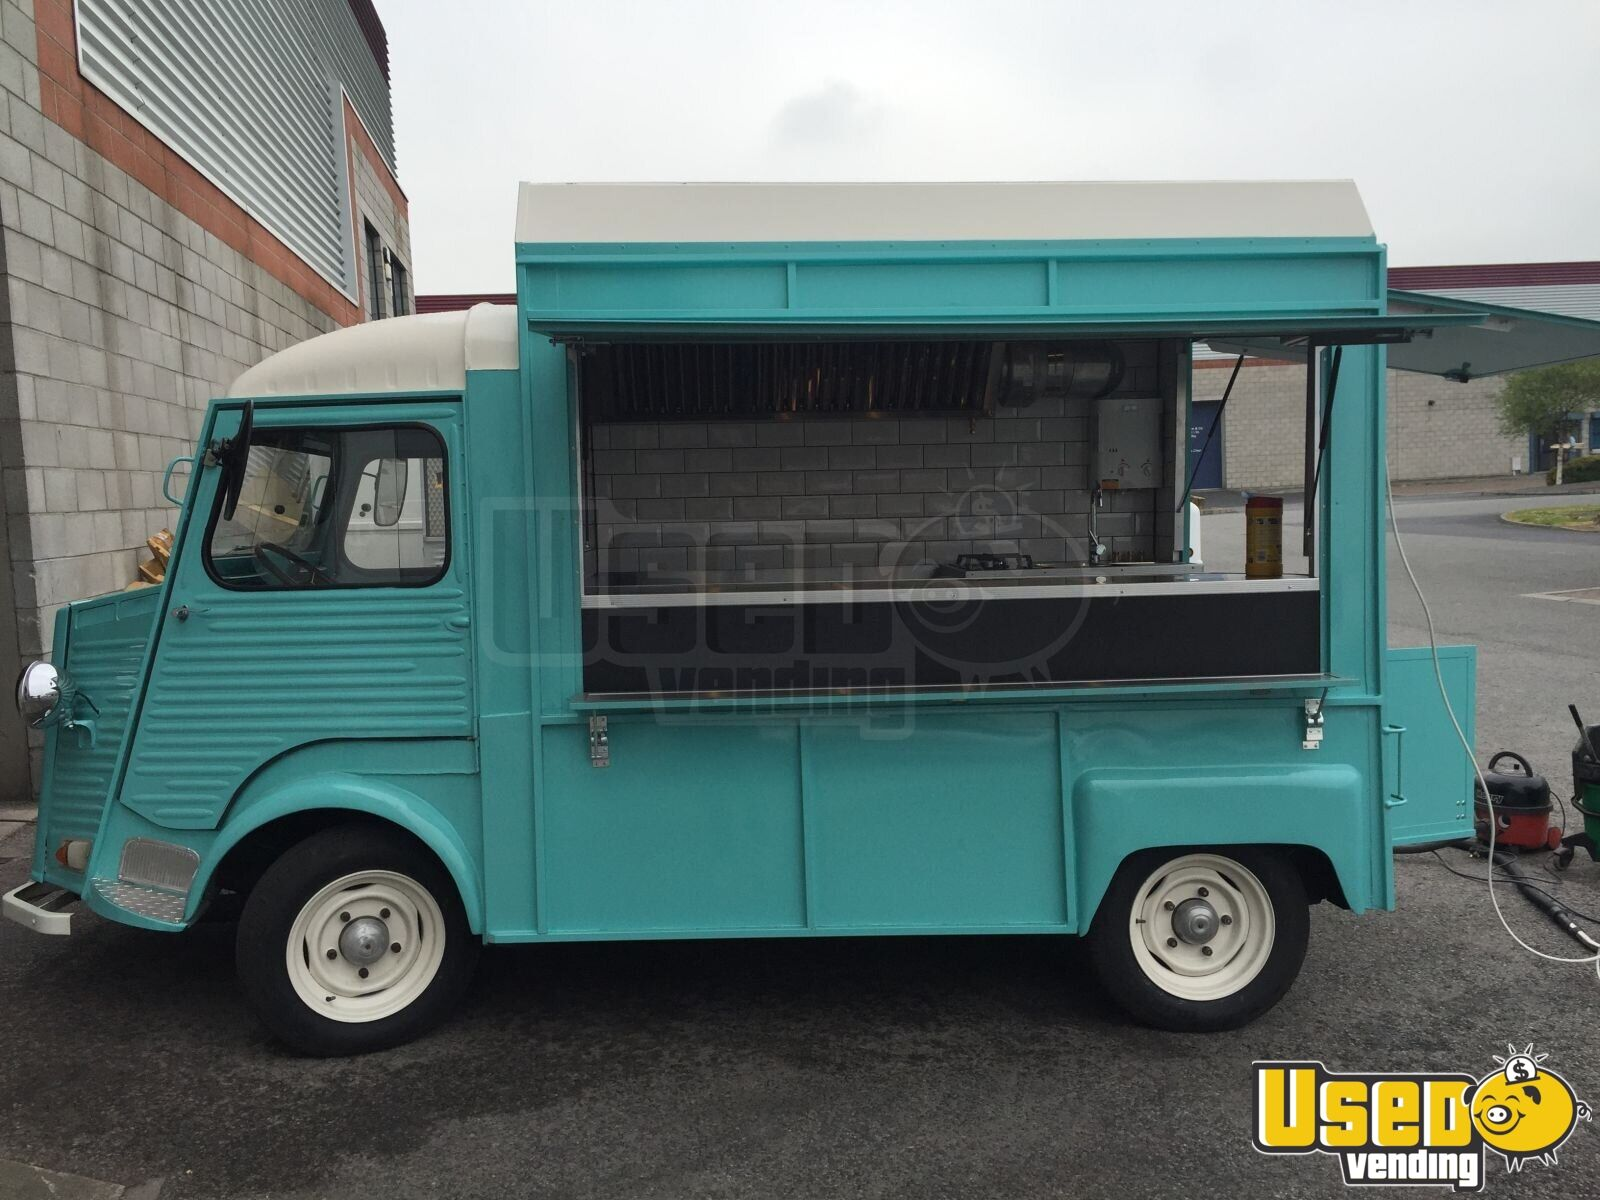 Food Sale: Coffee Truck For Sale In New York